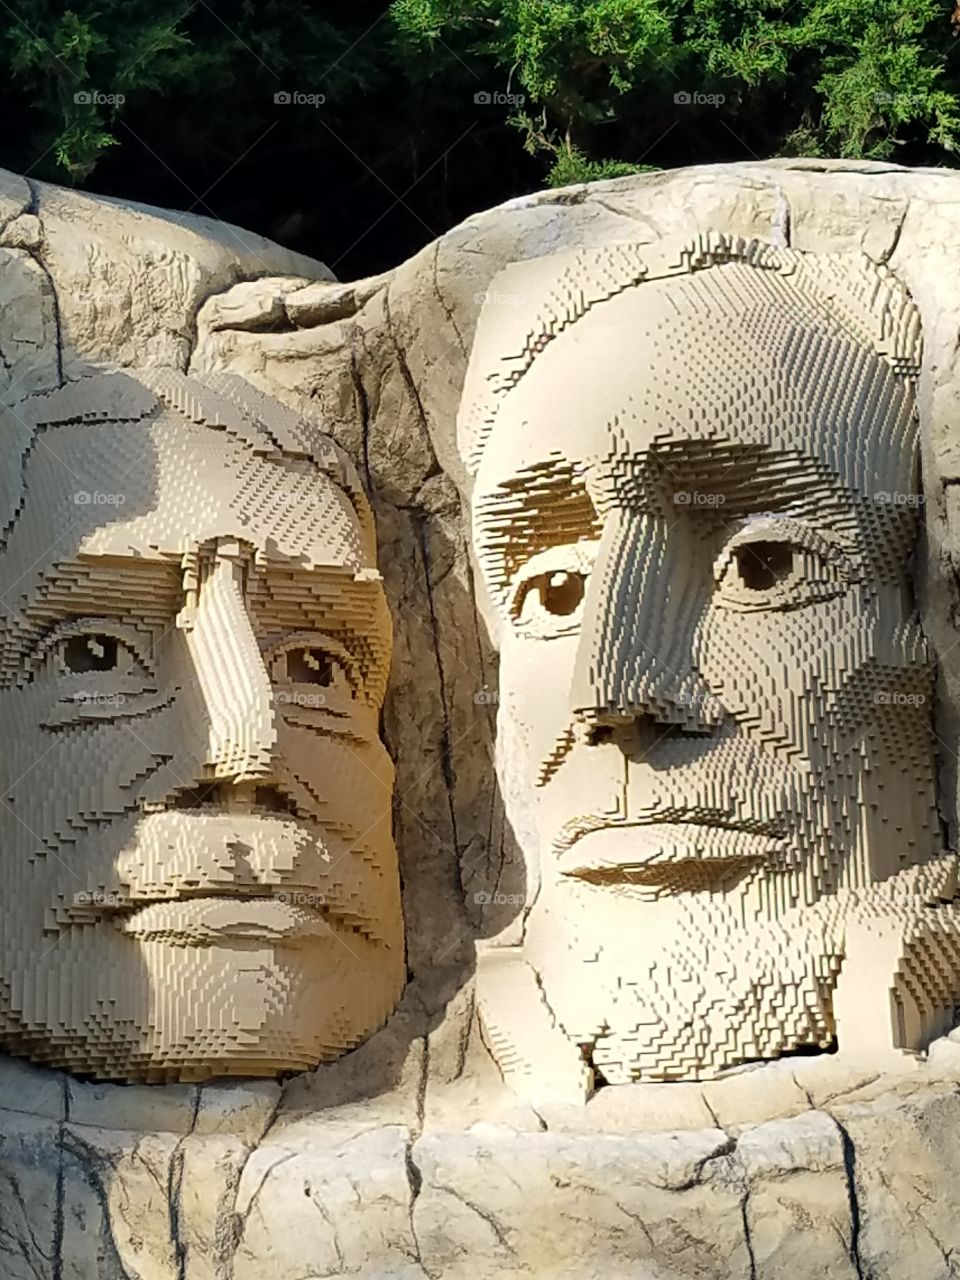 Lego Sculptures of US Presidents